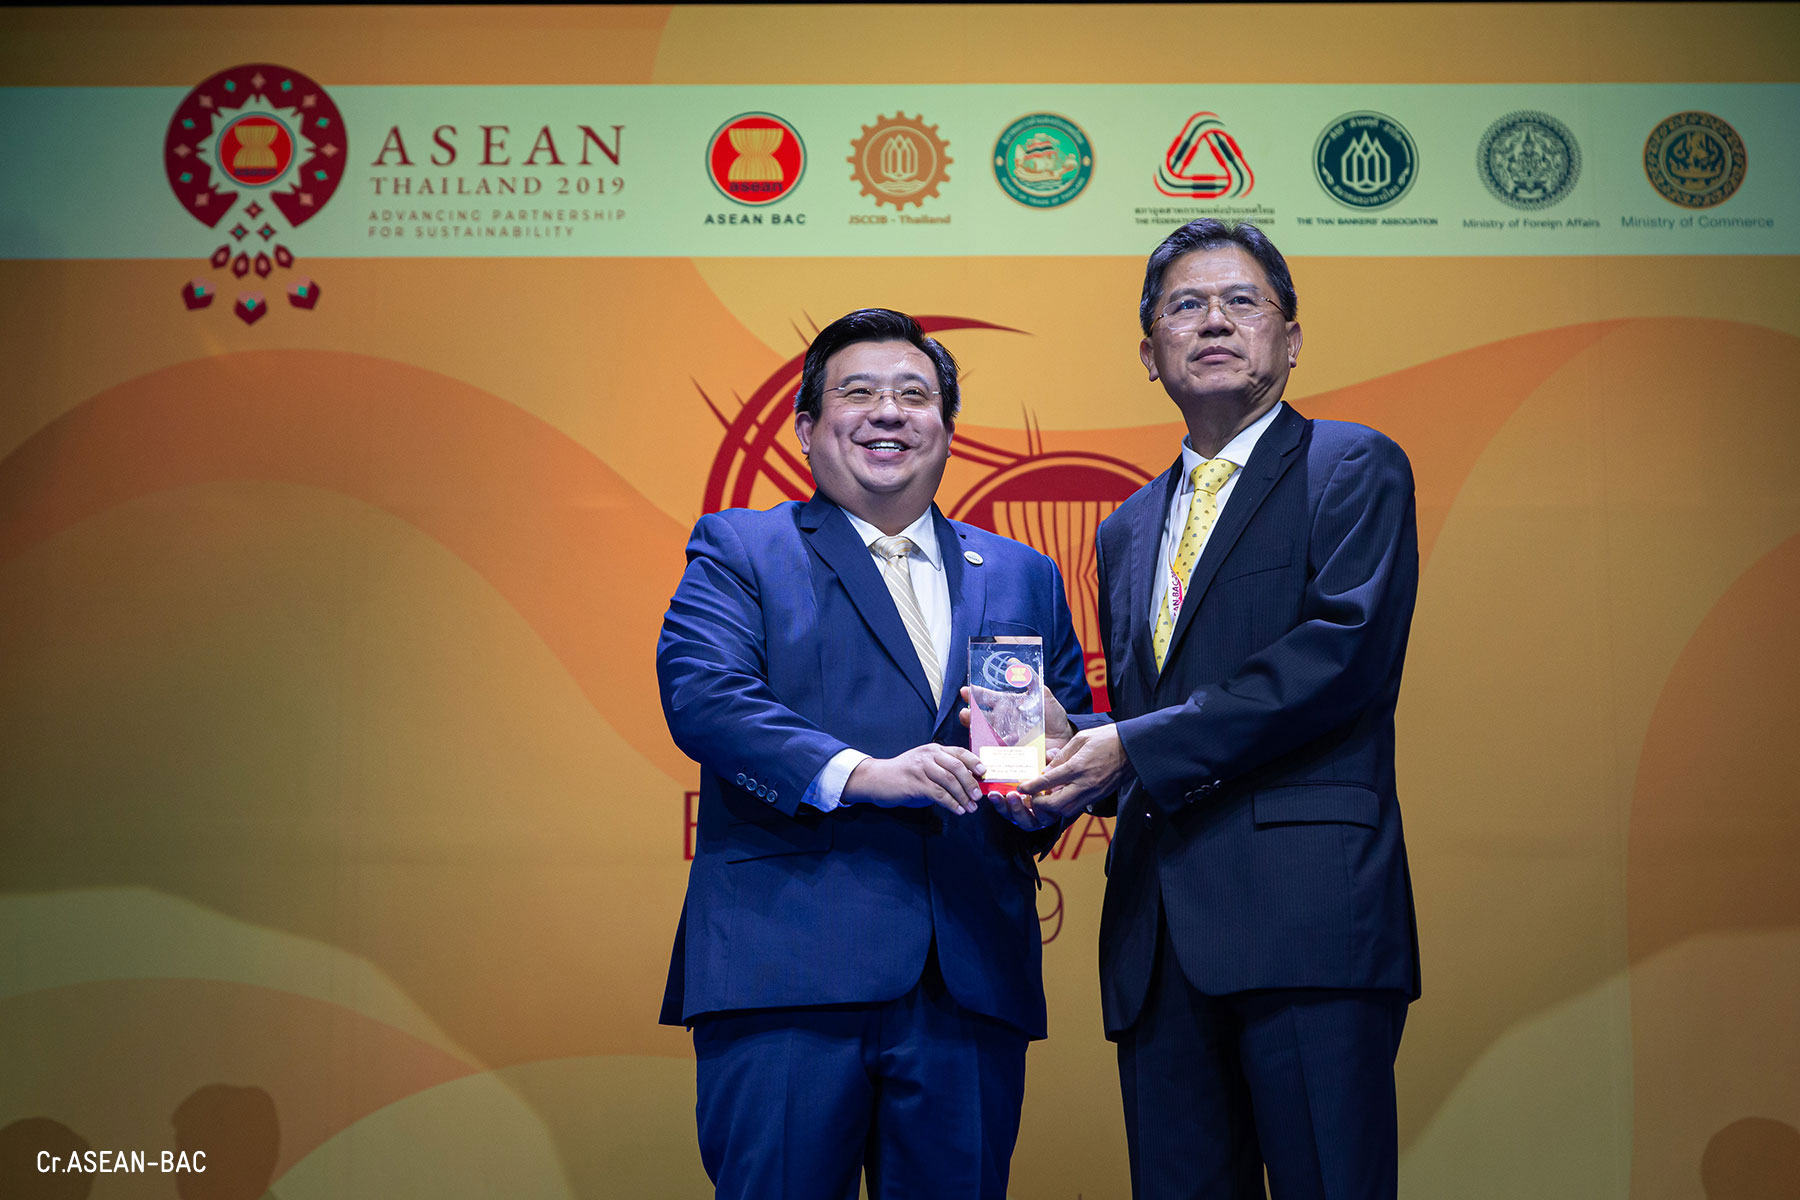 Shalom receiving the trophy Gideon Lam, CEO of Shalom International Movers and Mr. Predee Daochai, Chairman of the Thai Bankers' Association